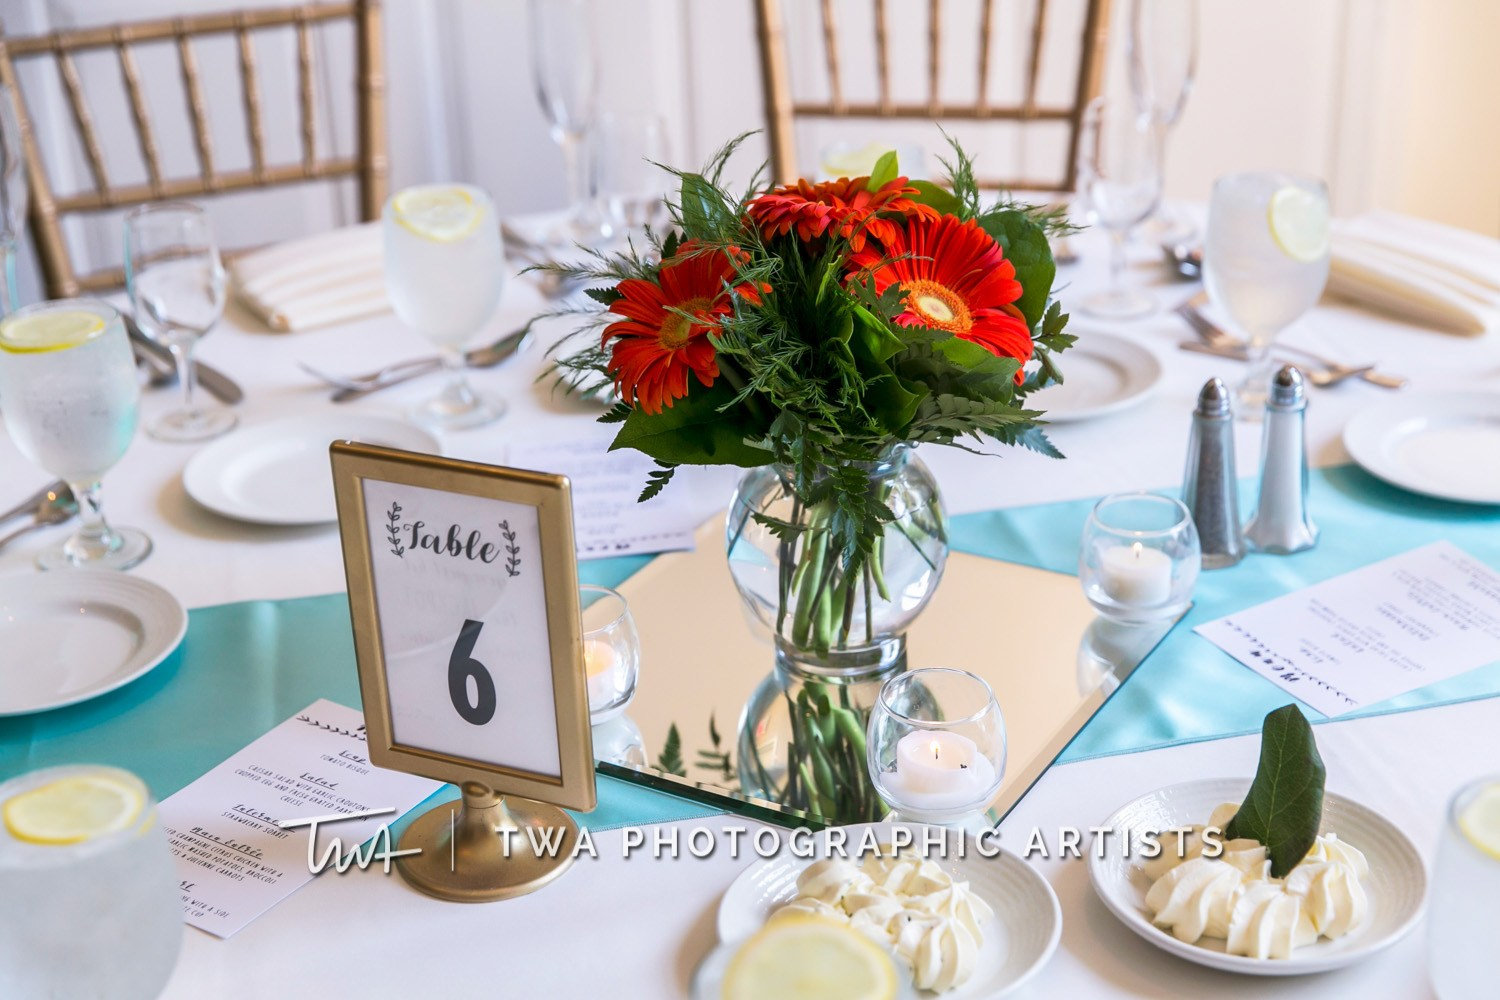 Chicago-Wedding-Photographer-TWA-Photographic-Artists-Abbington-Banquets_Gaela_Bowles_DR-0524